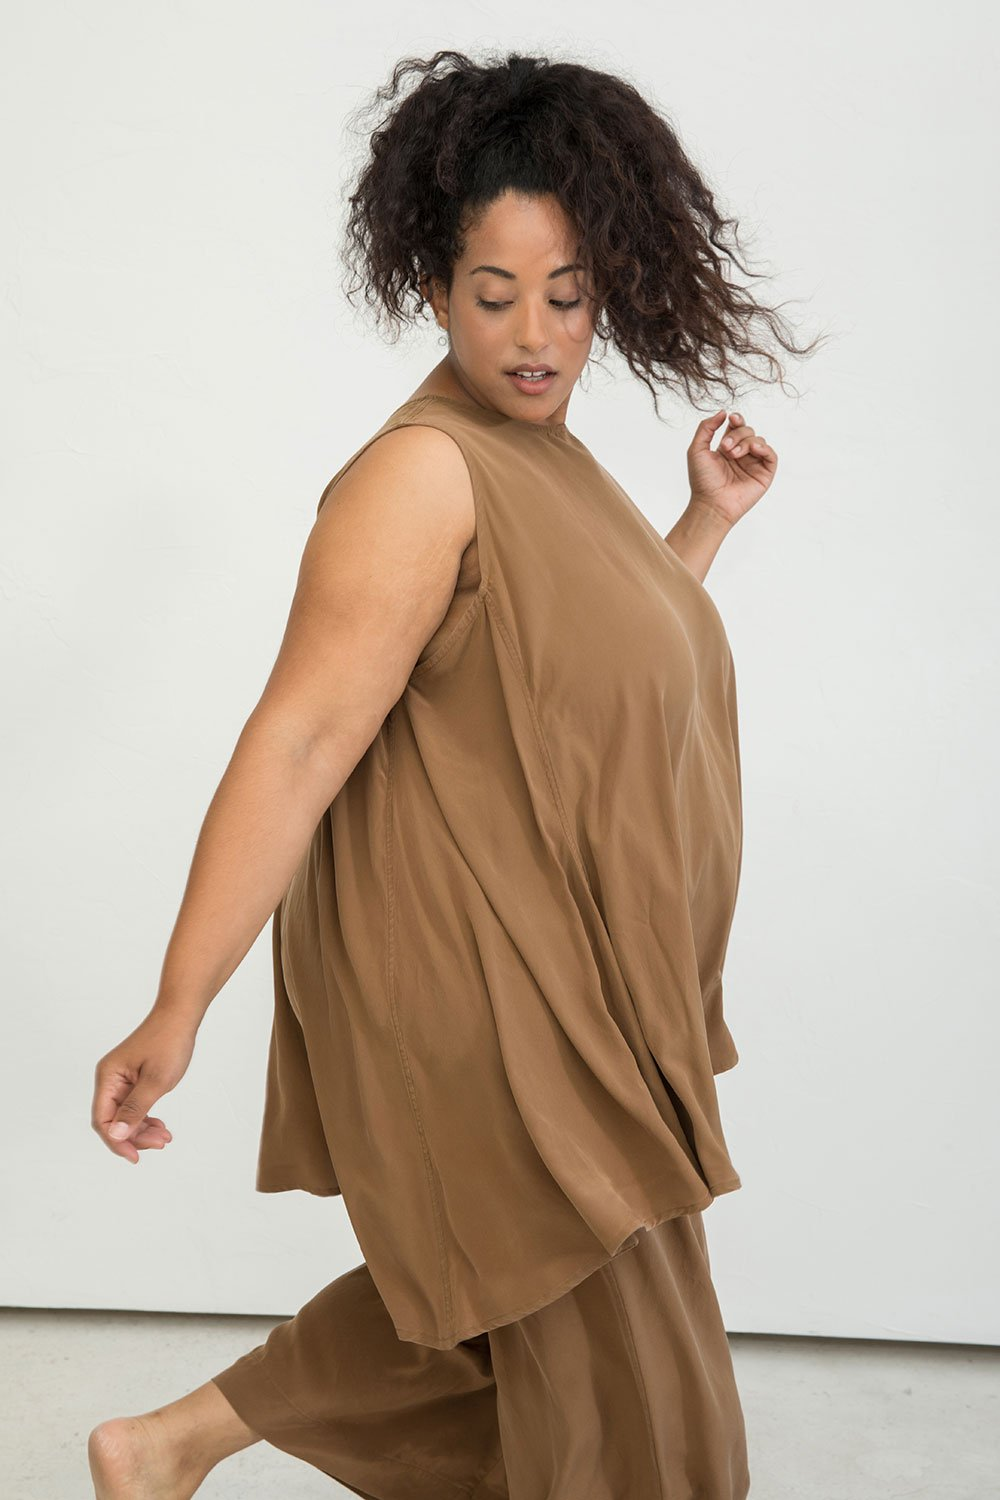 ELIZABETH SUZANN (ECO) - Beautiful elegant and casual clothes made out of silk and linen.$$$, US, Sizes: XS - 4XL, Worldwide delivery.